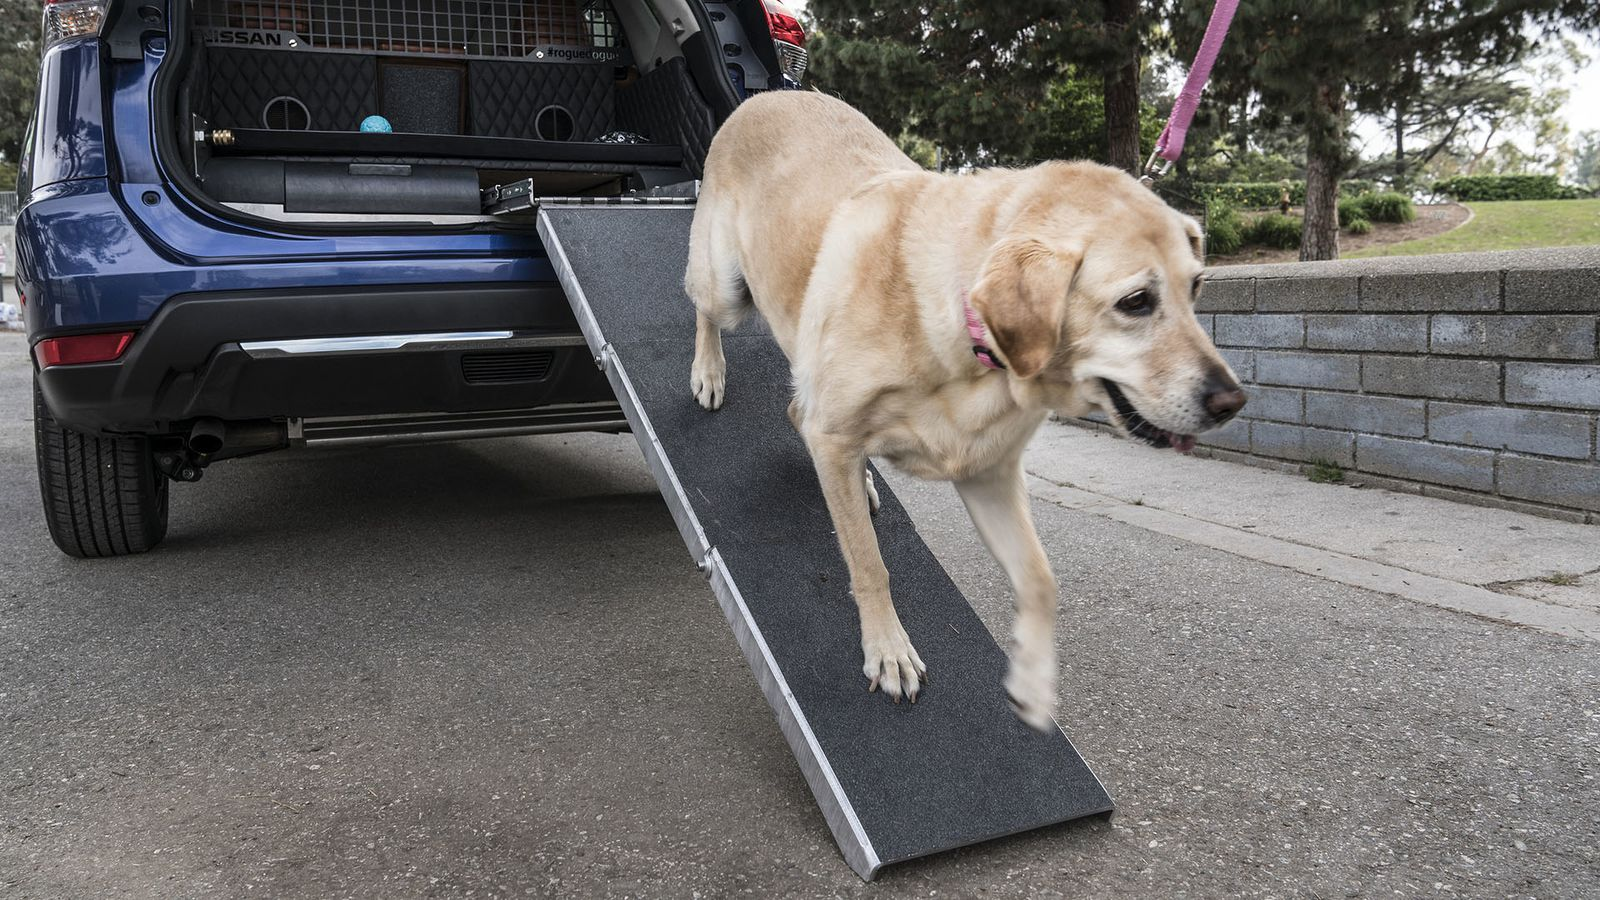 Is nissan 39 s rogue dogue a good place to put dogs or a dog prison on wheels the verge - Dogs for small spaces concept ...